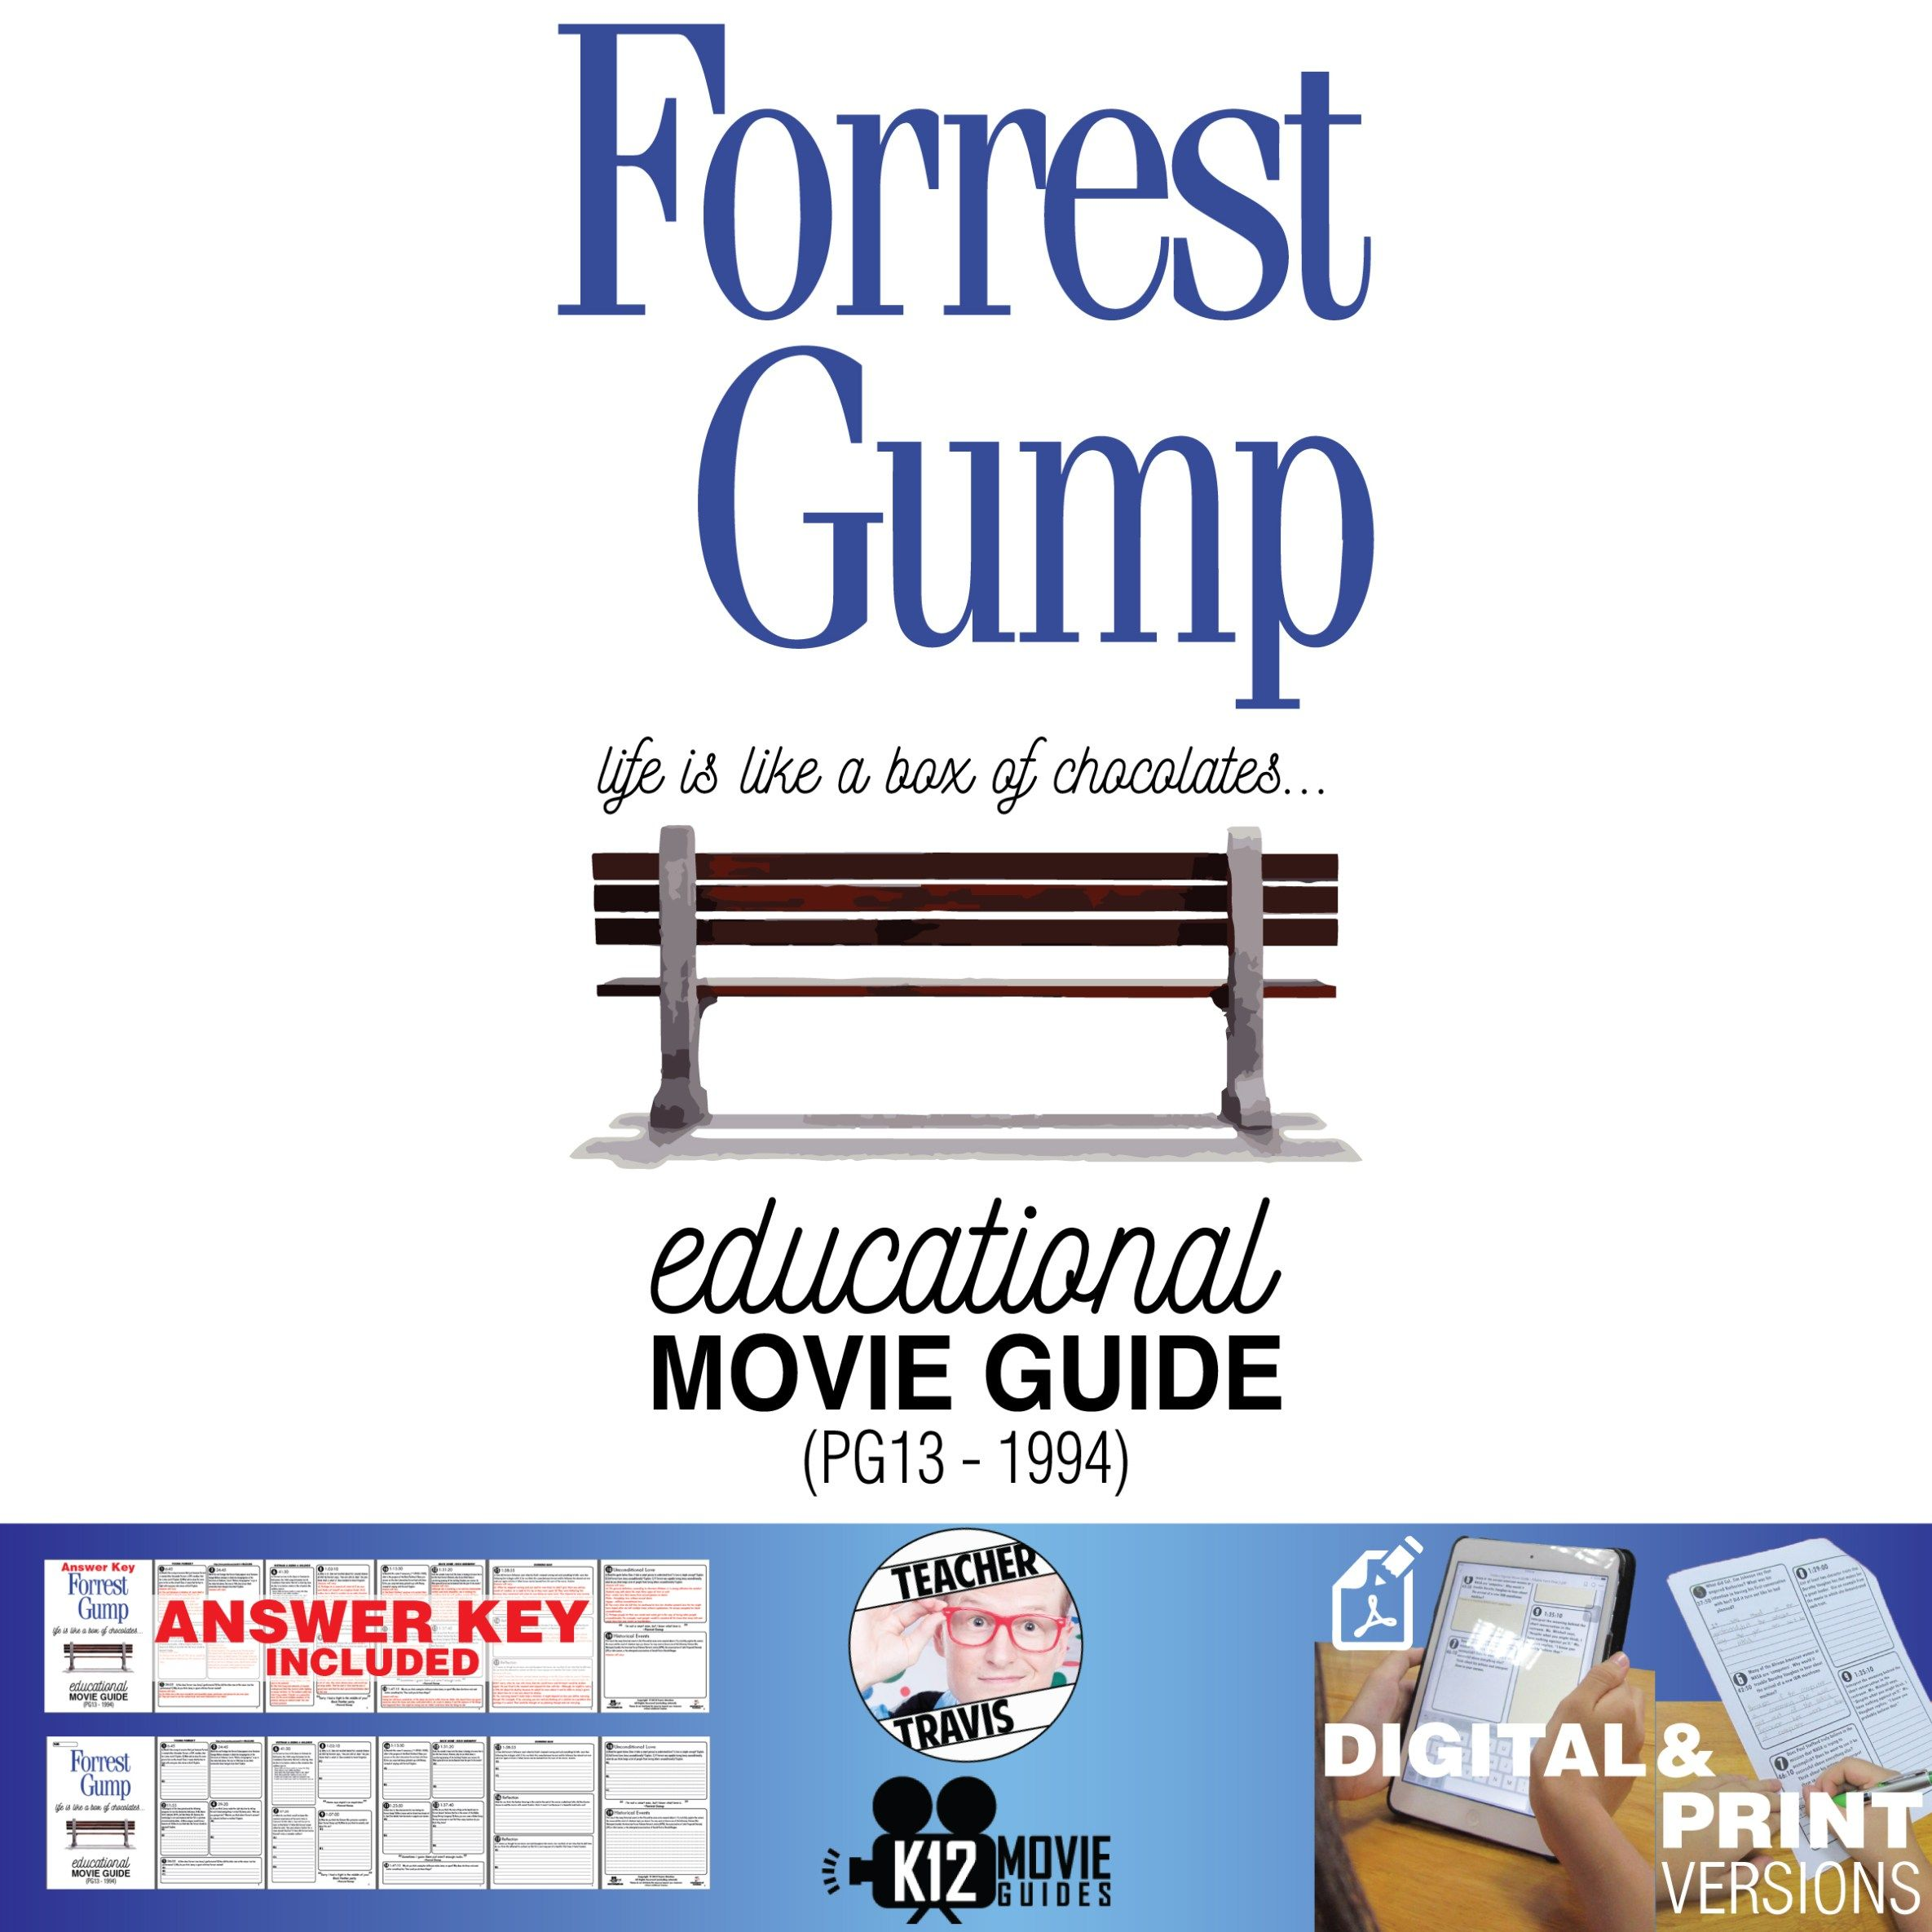 Forrest Gump Movie Guide